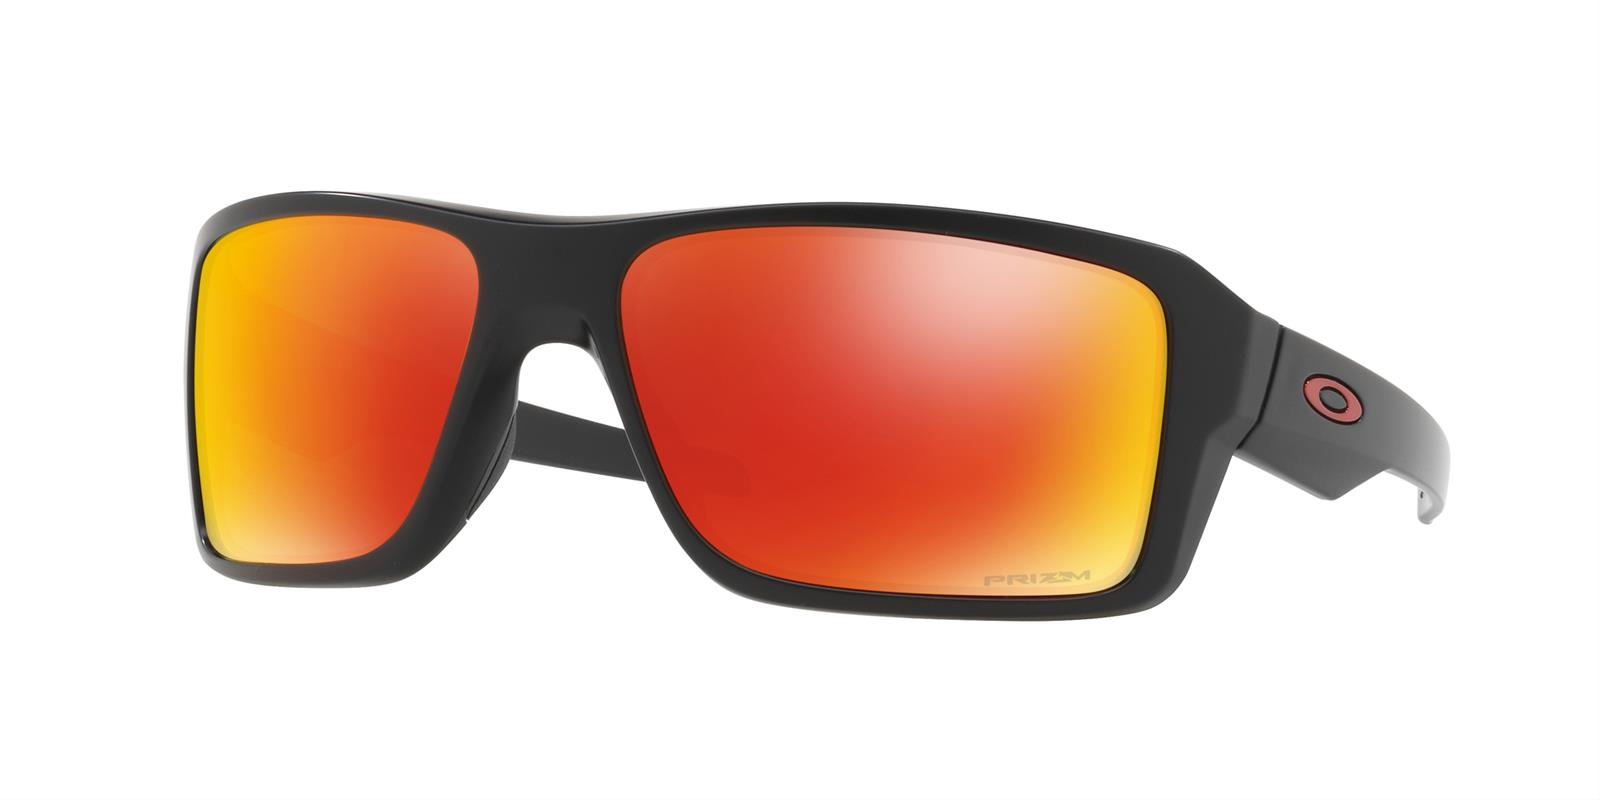 06eccbed50b Oakley Double Edge Sunglasses OO9380-0566 - Free Shipping on Orders Over   99 at Summit Racing